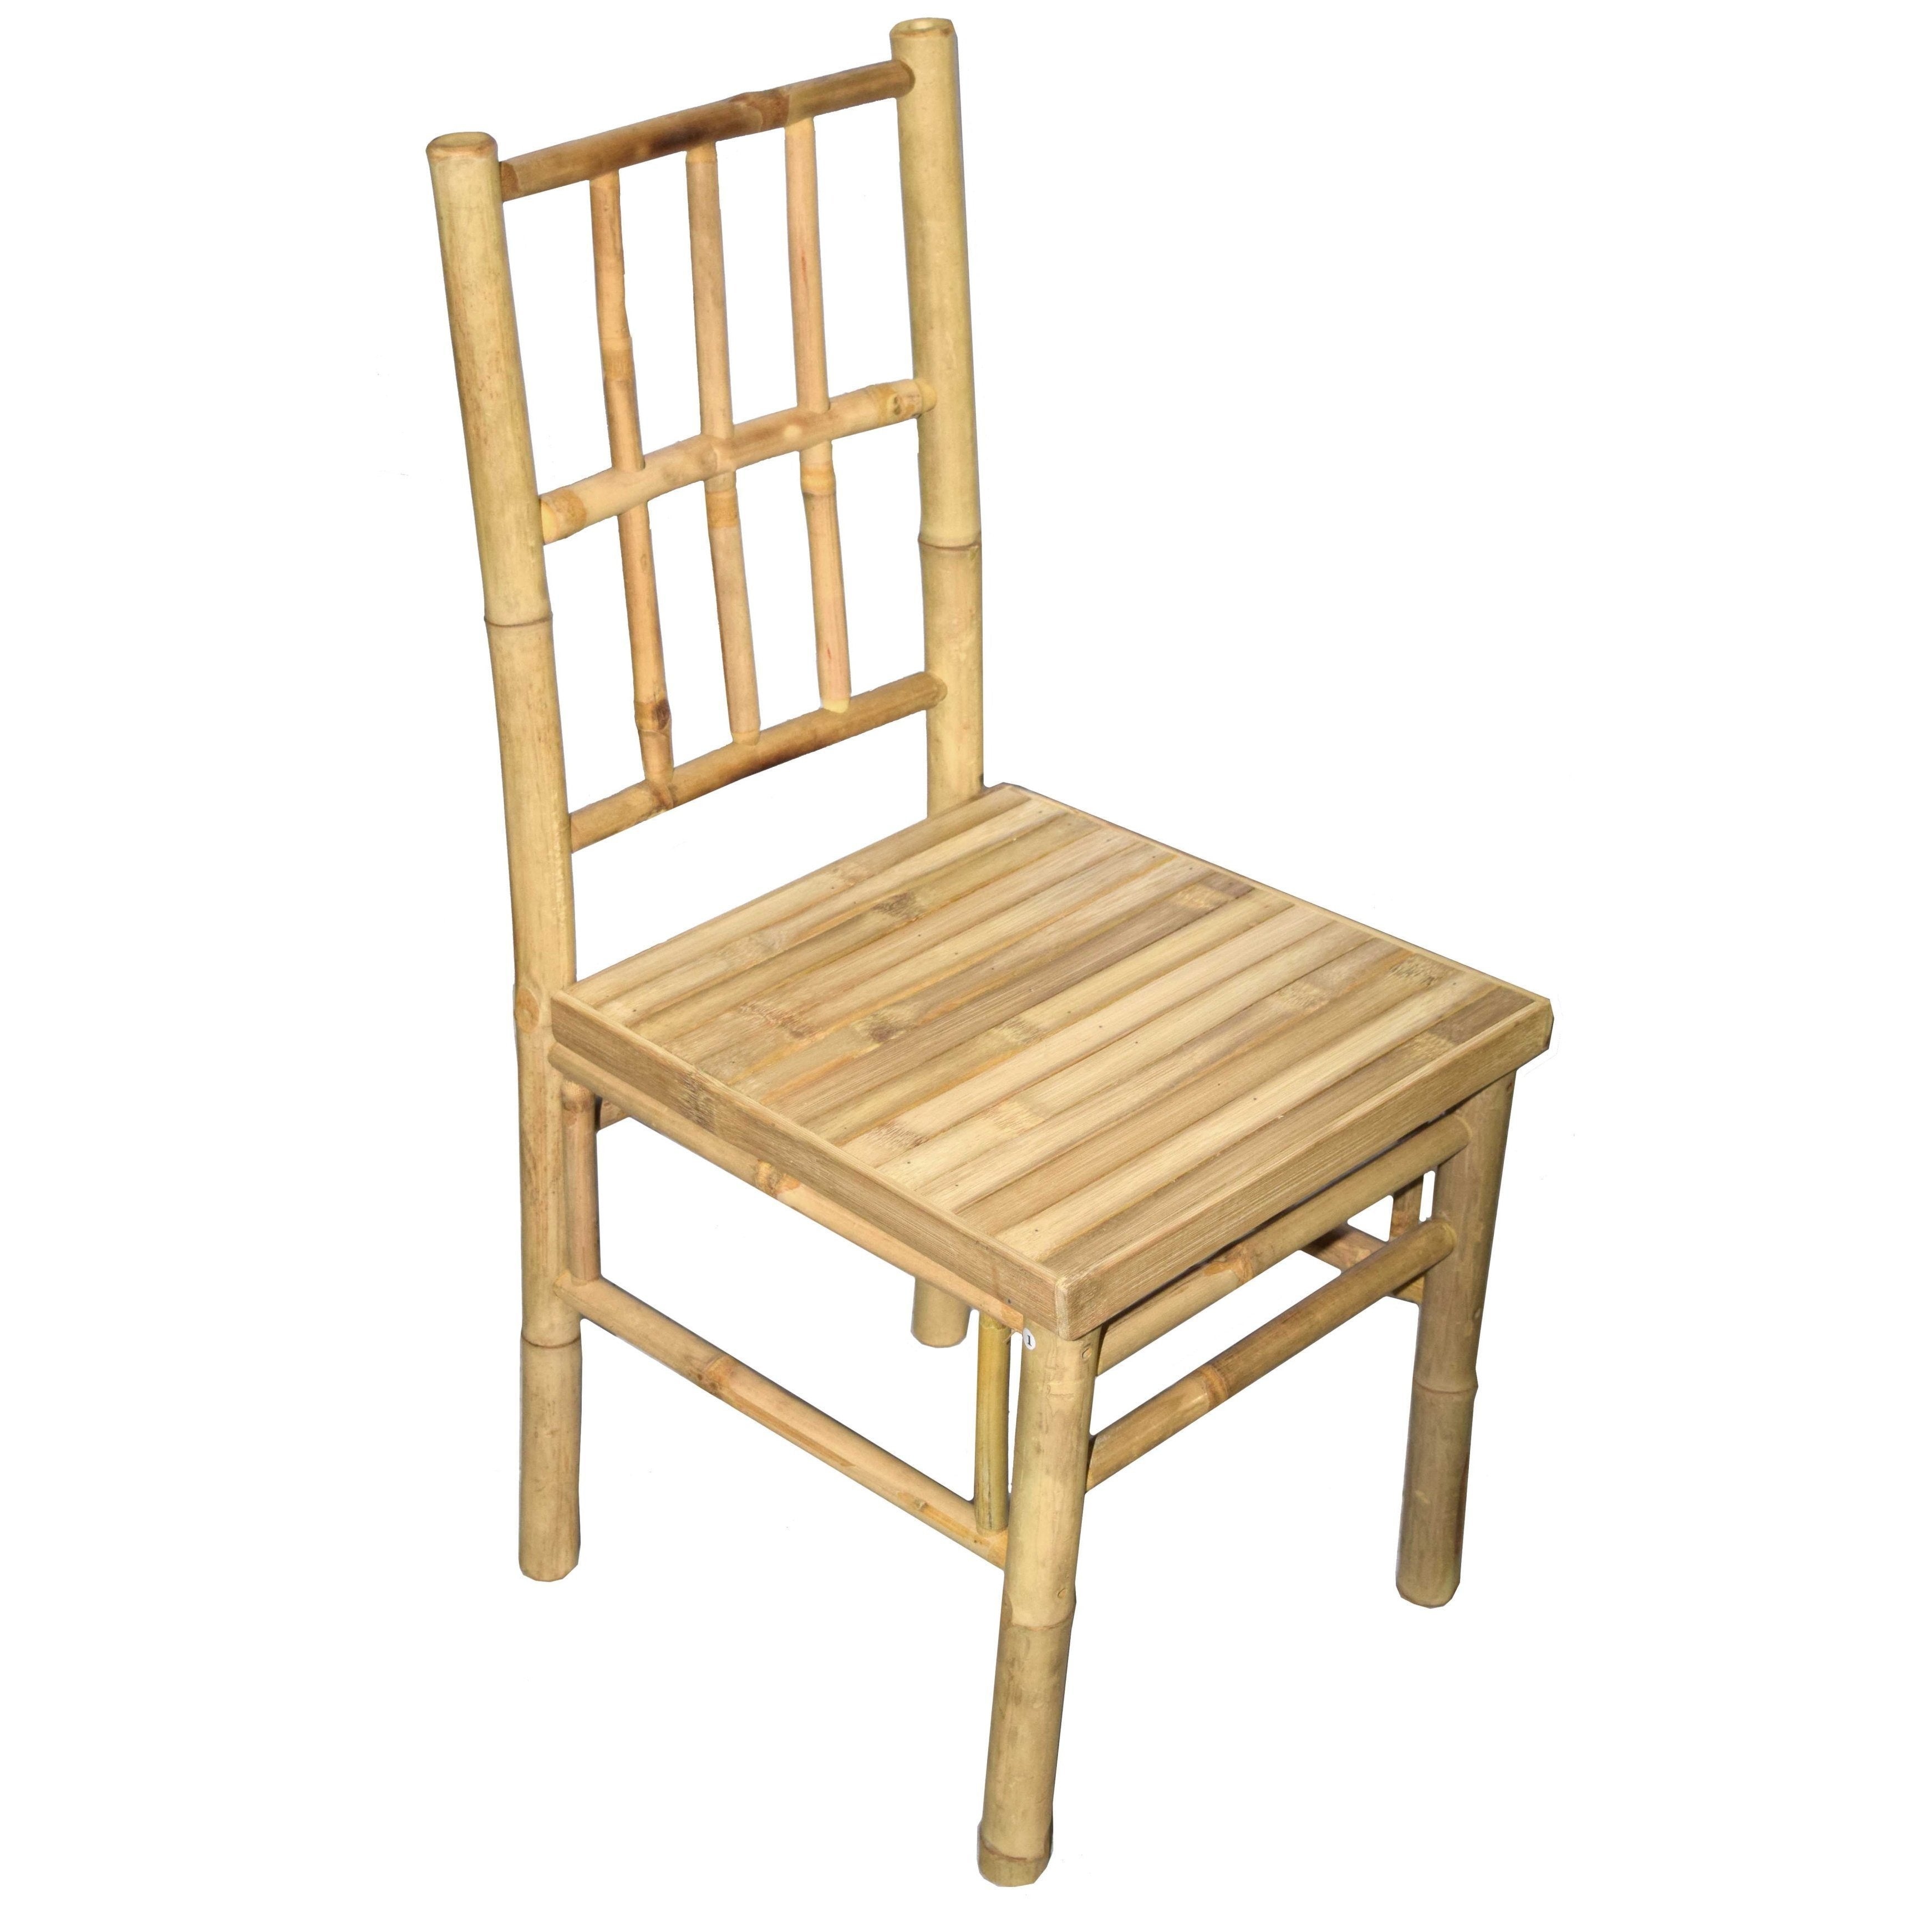 Shop handmade set of 2 bamboo dining chairs vietnam free shipping today overstock com 12020555